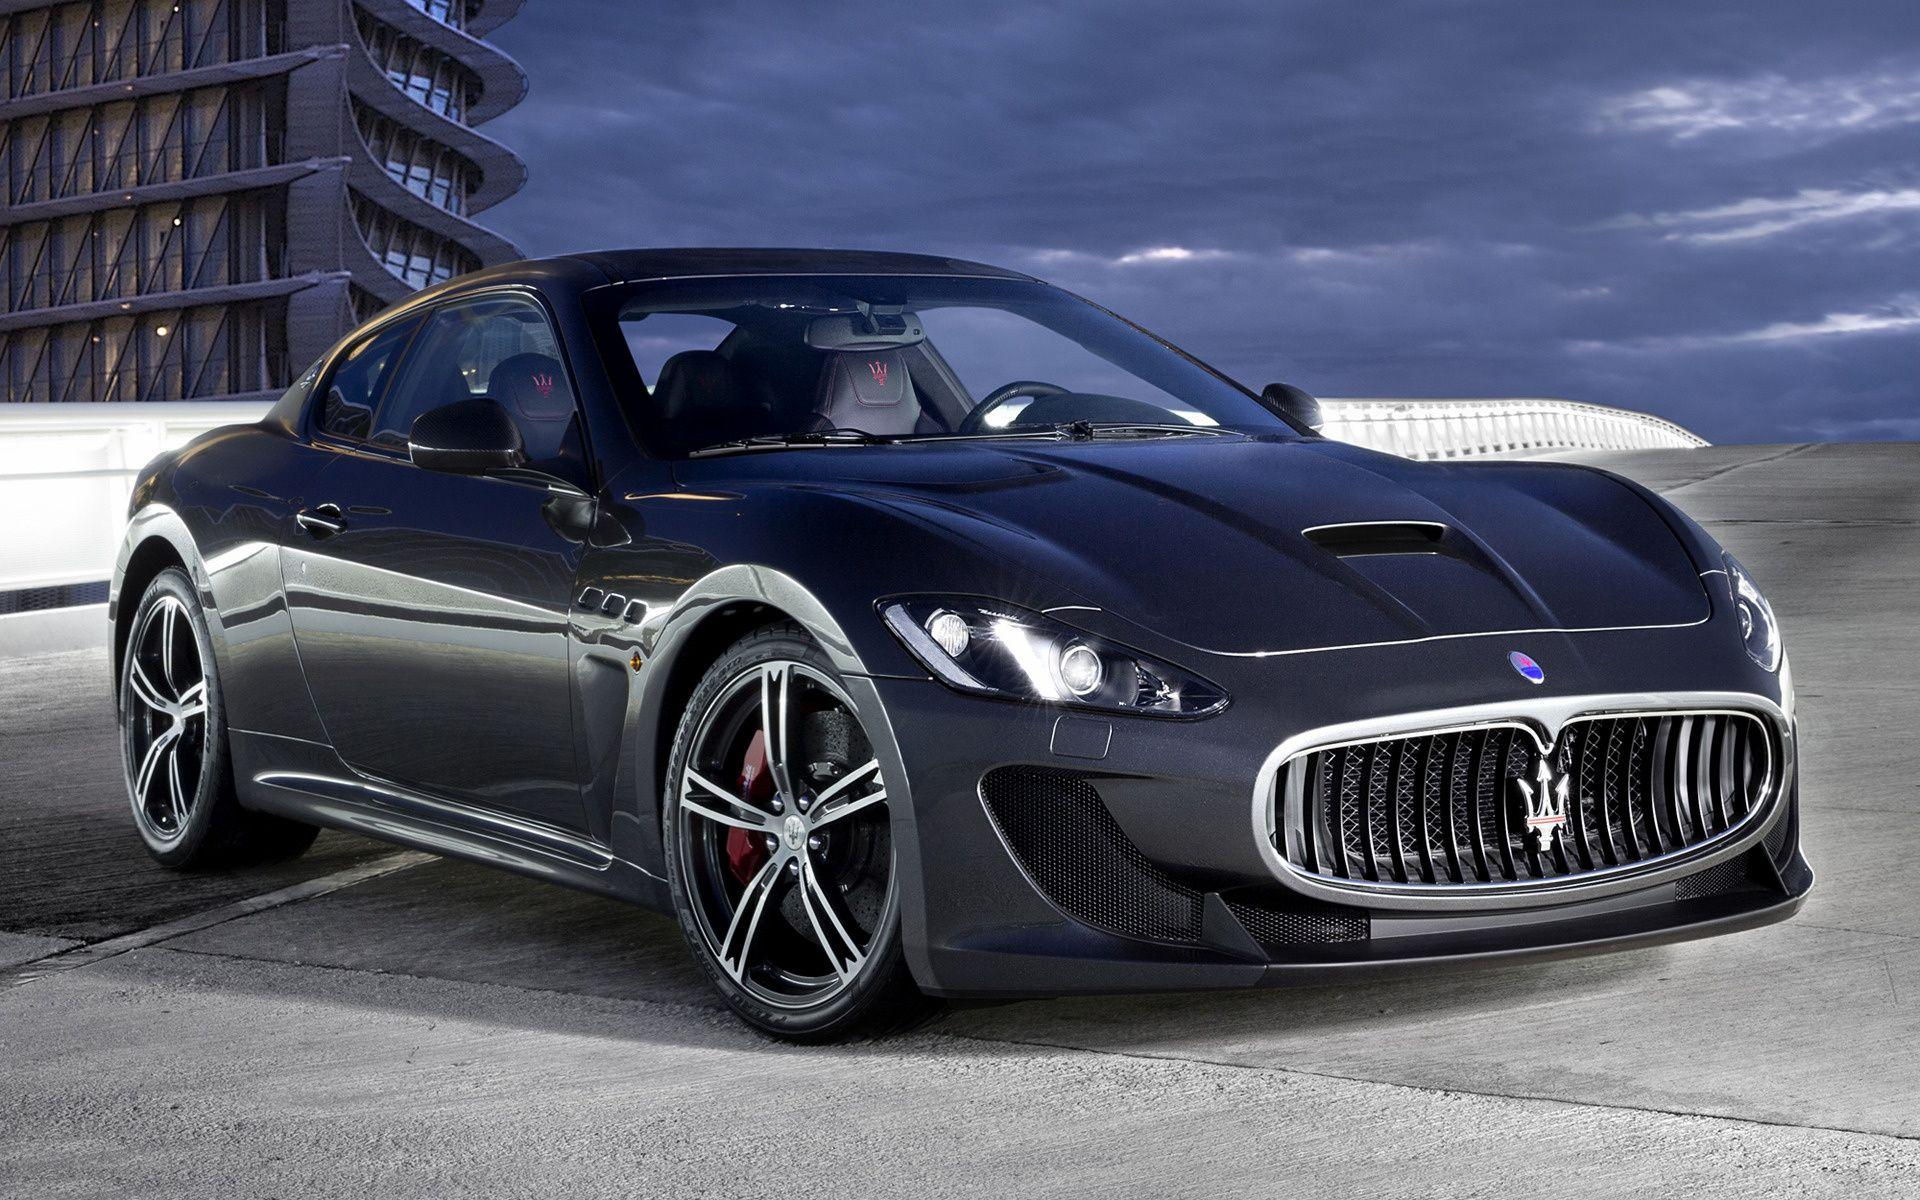 Maserati GranTurismo MC Stradale (2013) Wallpapers and HD Images ...